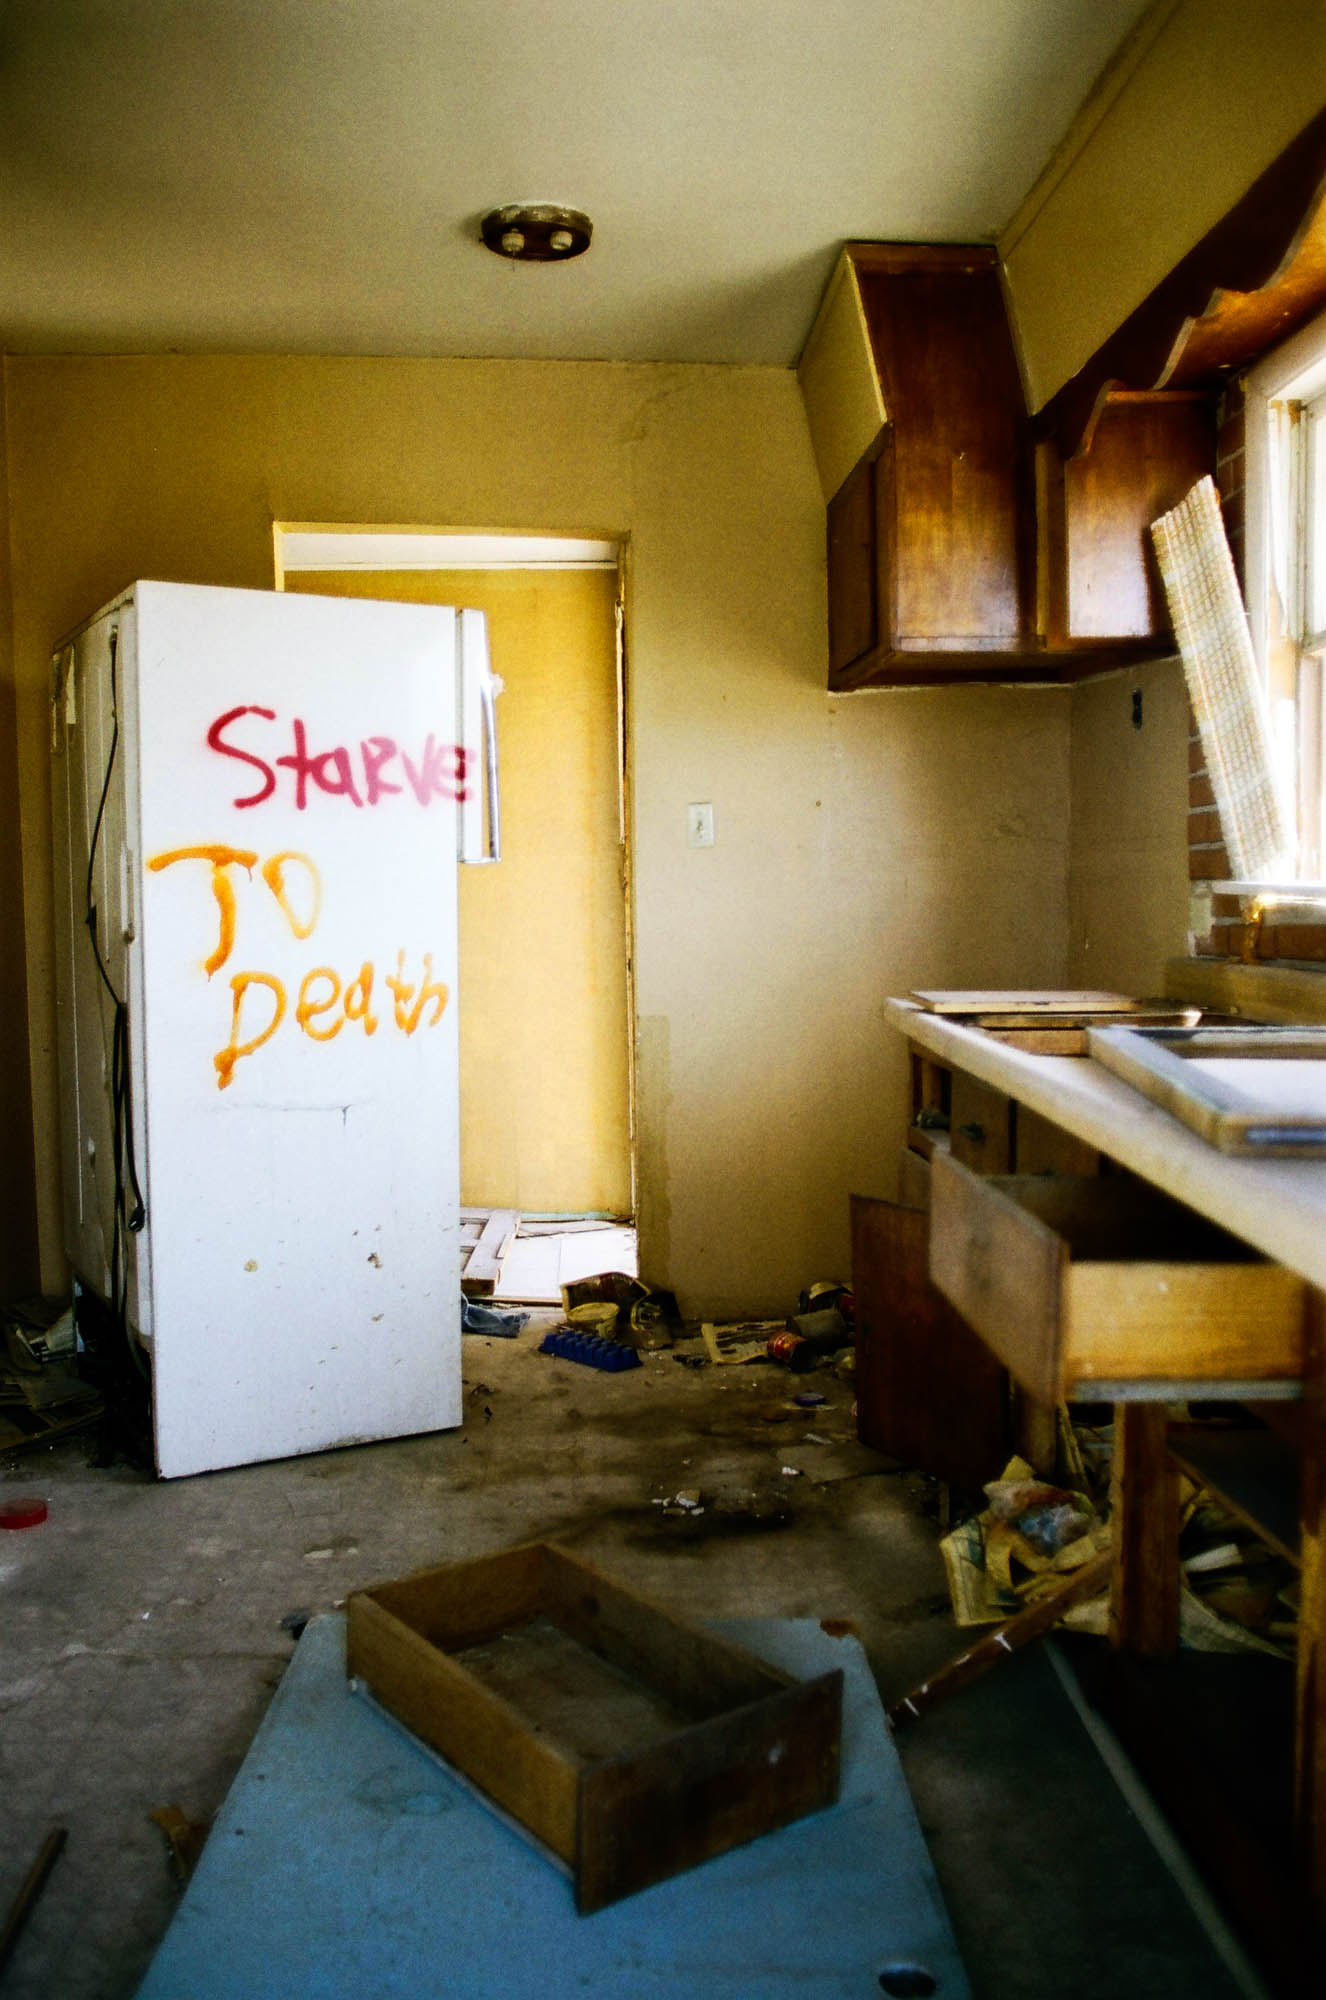 "<a href=""http://www.jasonhousefilm.com/photography/ghost-towns/"">""Soon to be Ghost Towns"" series, 2010</a>"